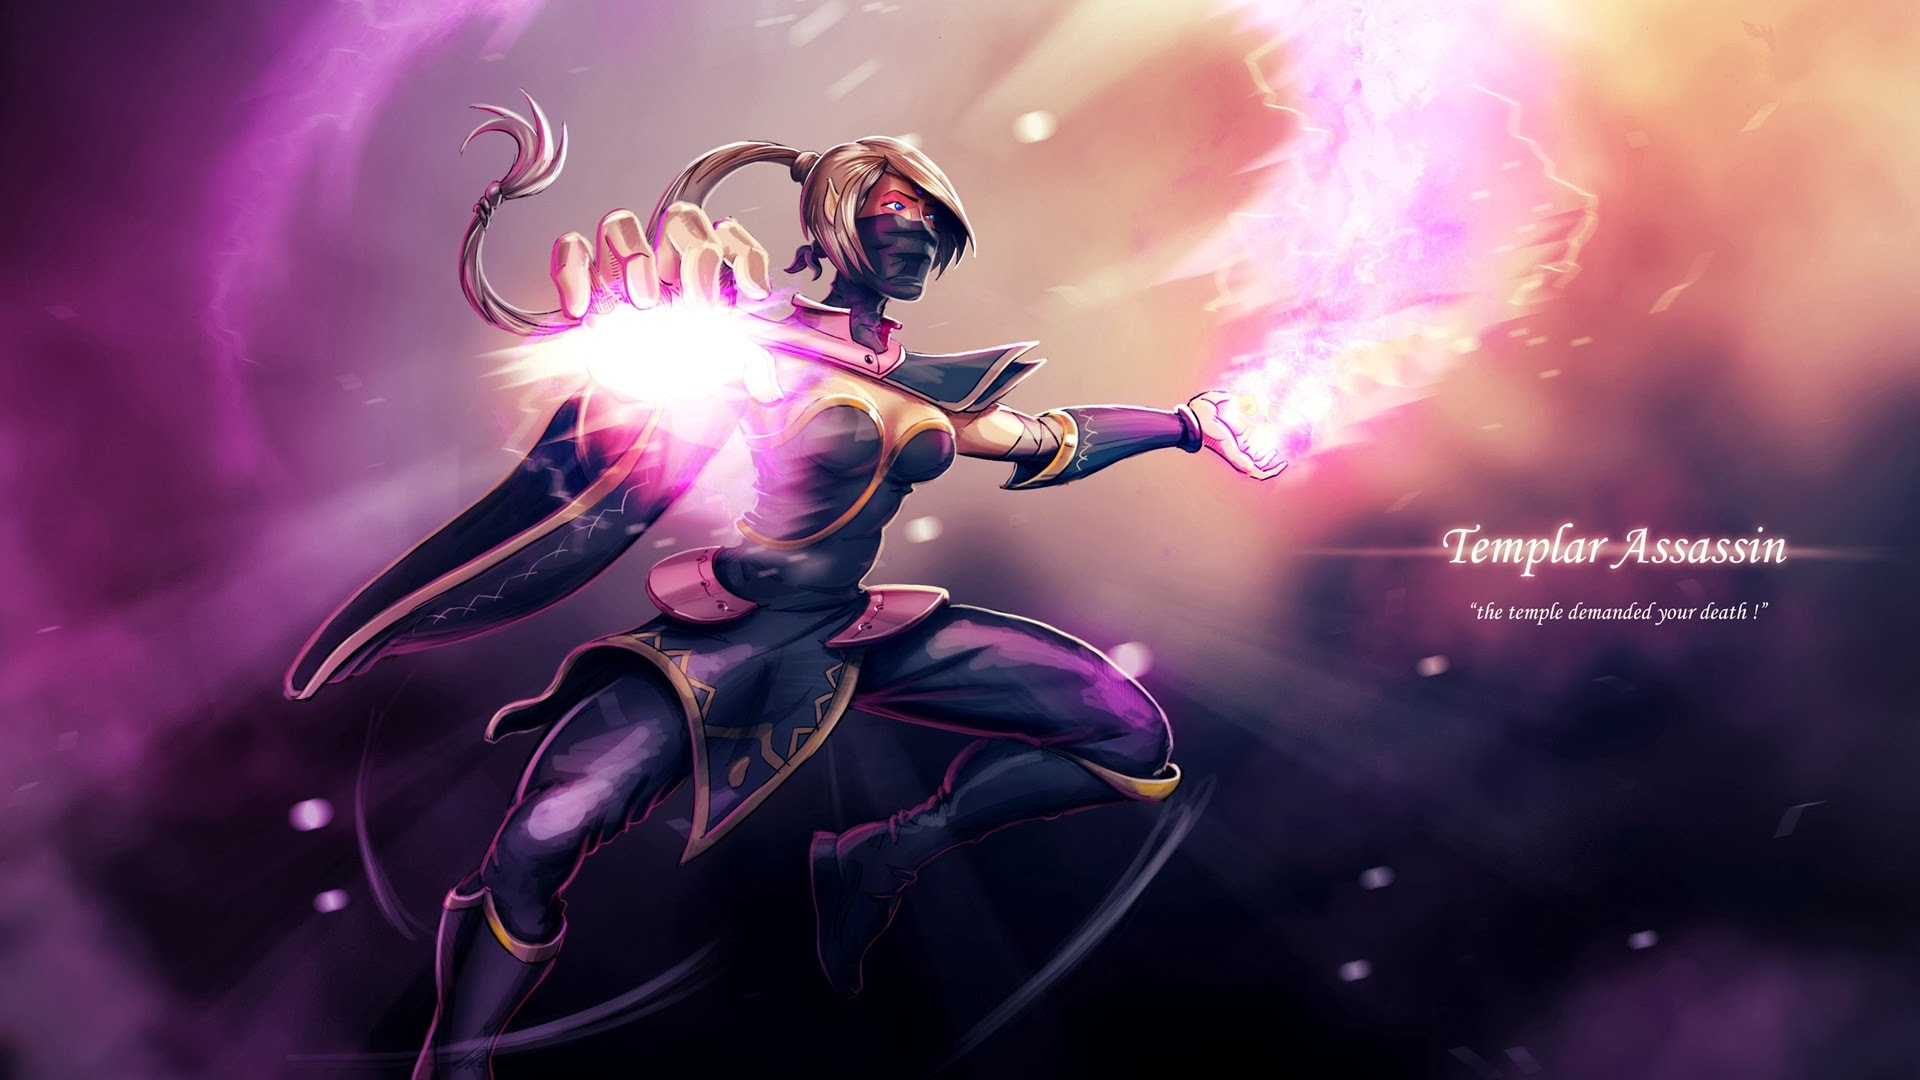 Dota2 : Templar Assassin Desktop wallpapers